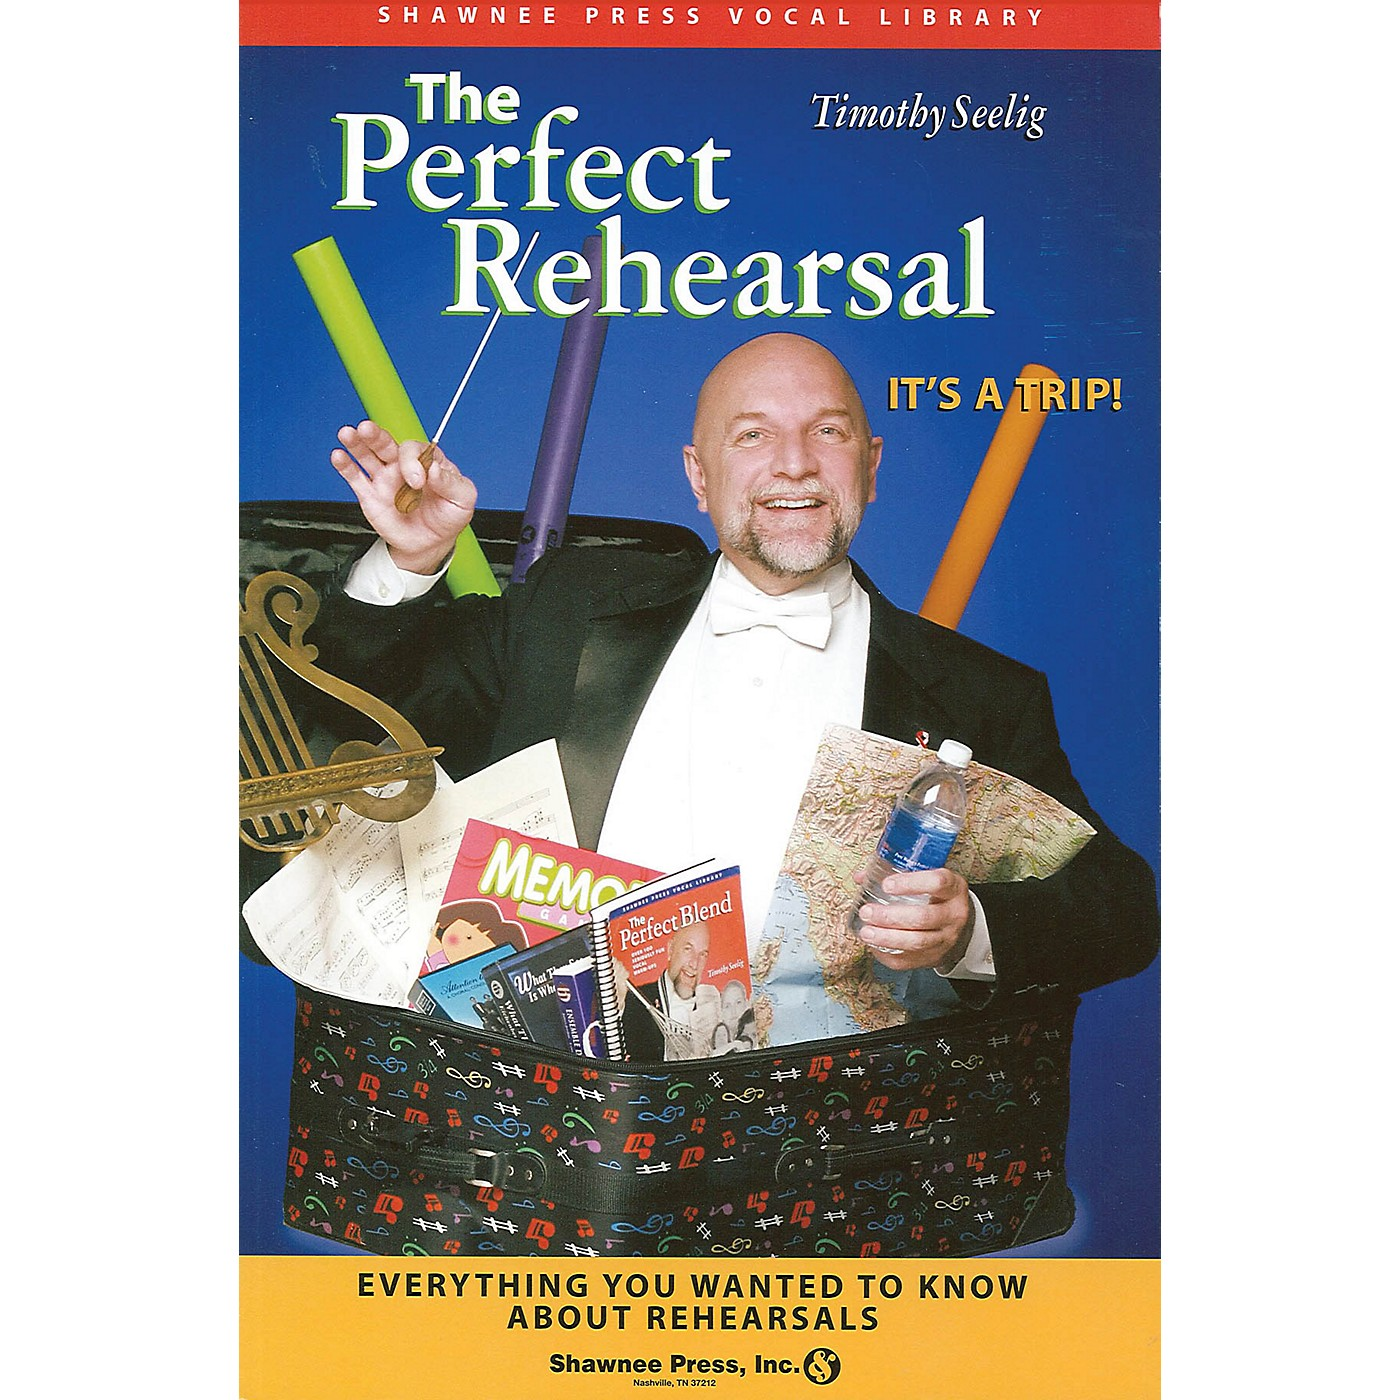 Shawnee Press The Perfect Rehearsal (Everything You Wanted to Know About Rehearsals!) thumbnail